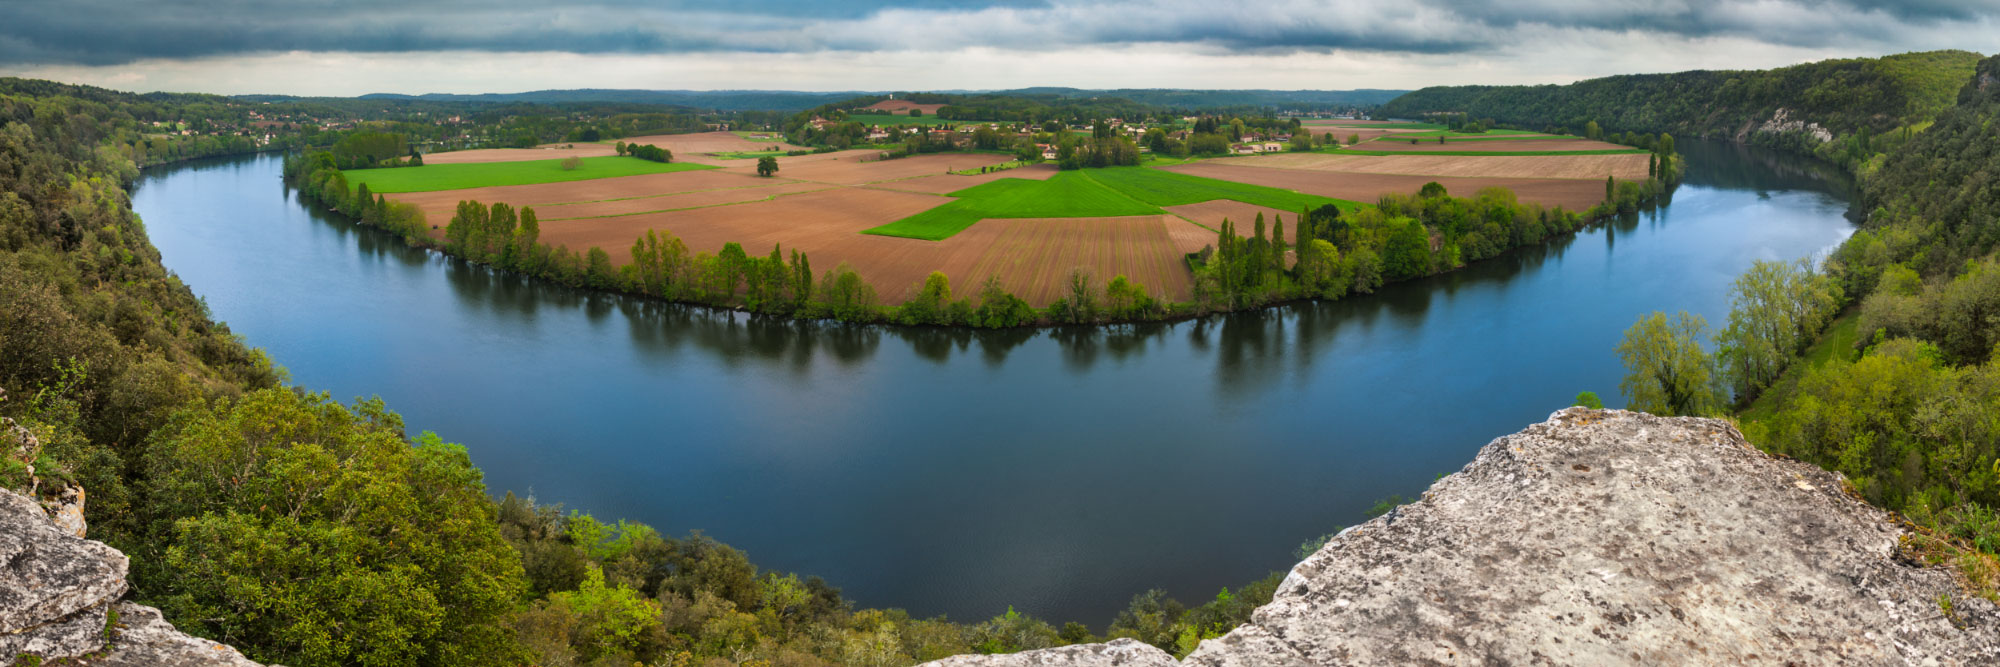 12-14851-france-dordogne-la-dordogne-a-la-cingle-de-tremolat-panorama-sentucq-h